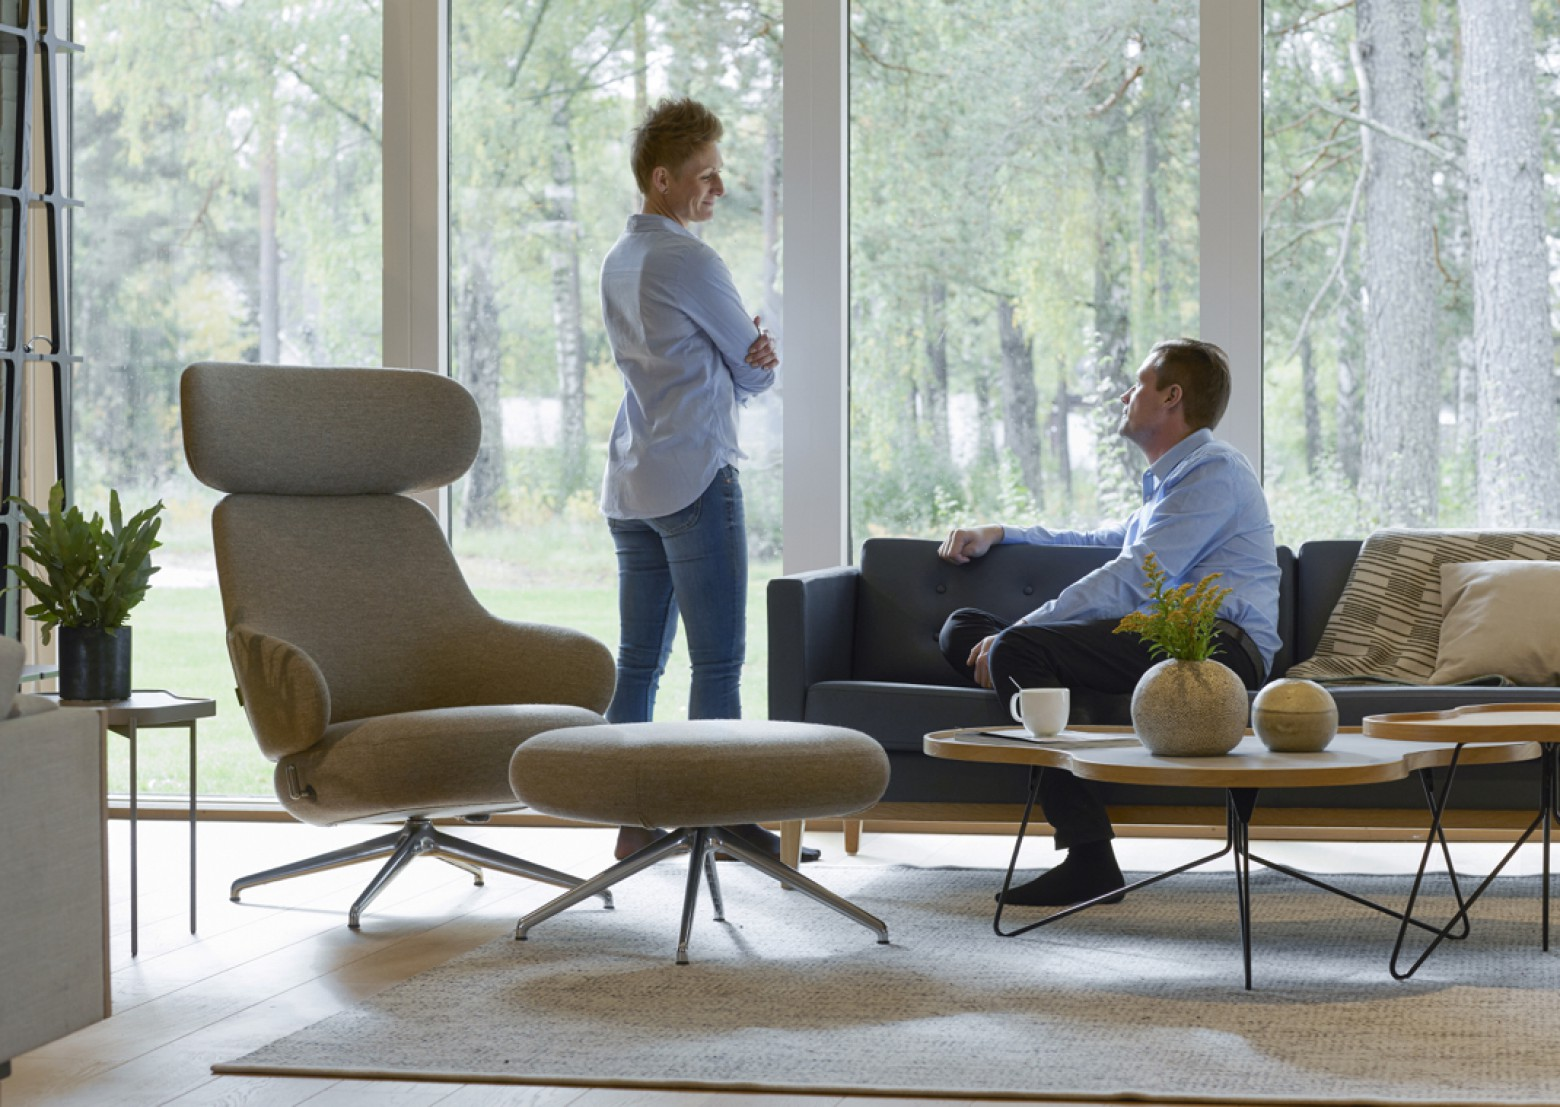 Pillo met hoge rug: royale lounger  Victors Design Agency